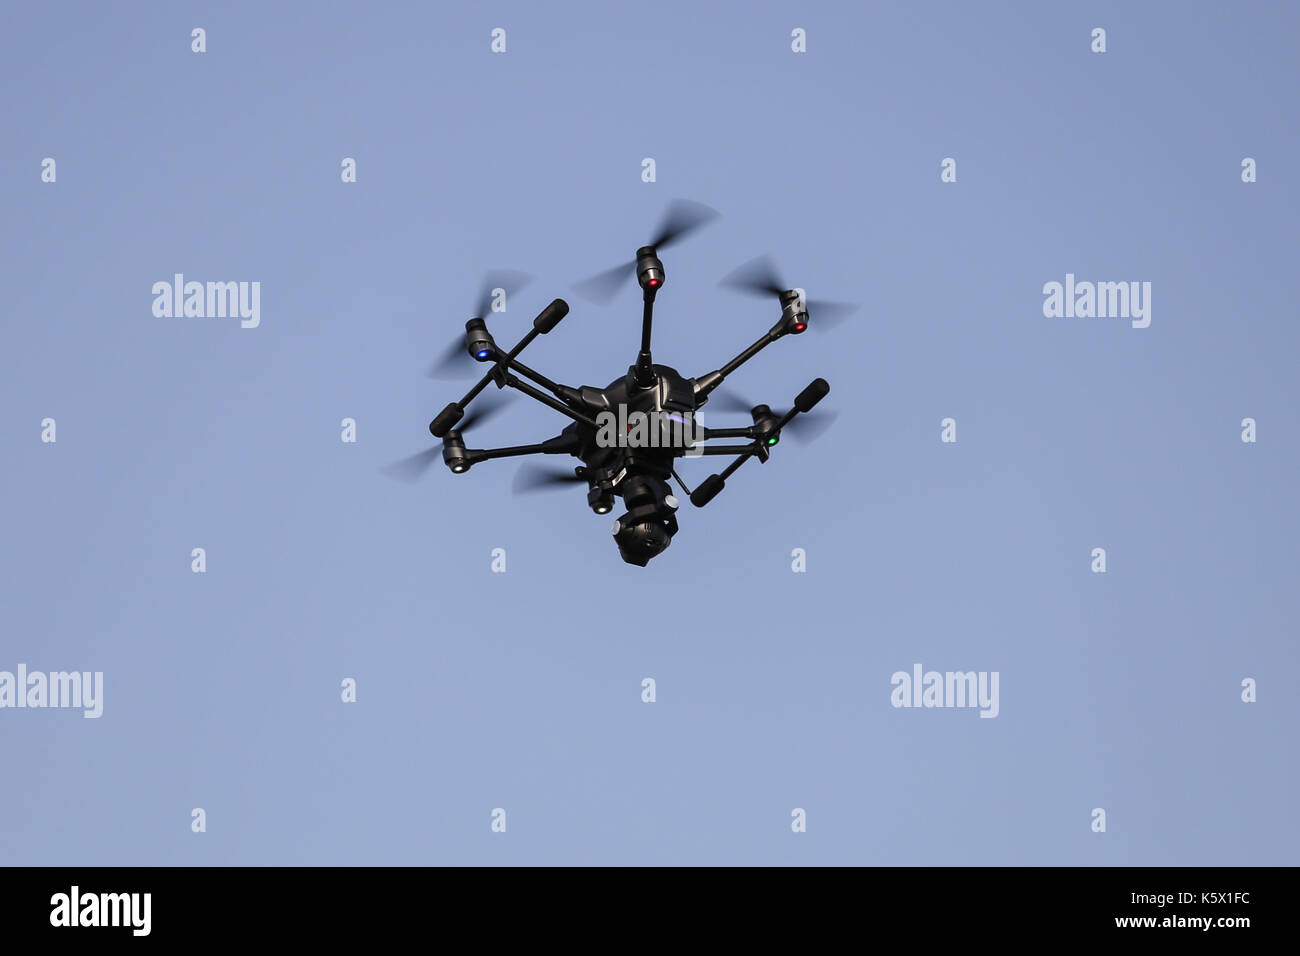 Black hexacopter helicopter is flying in sky - Stock Image